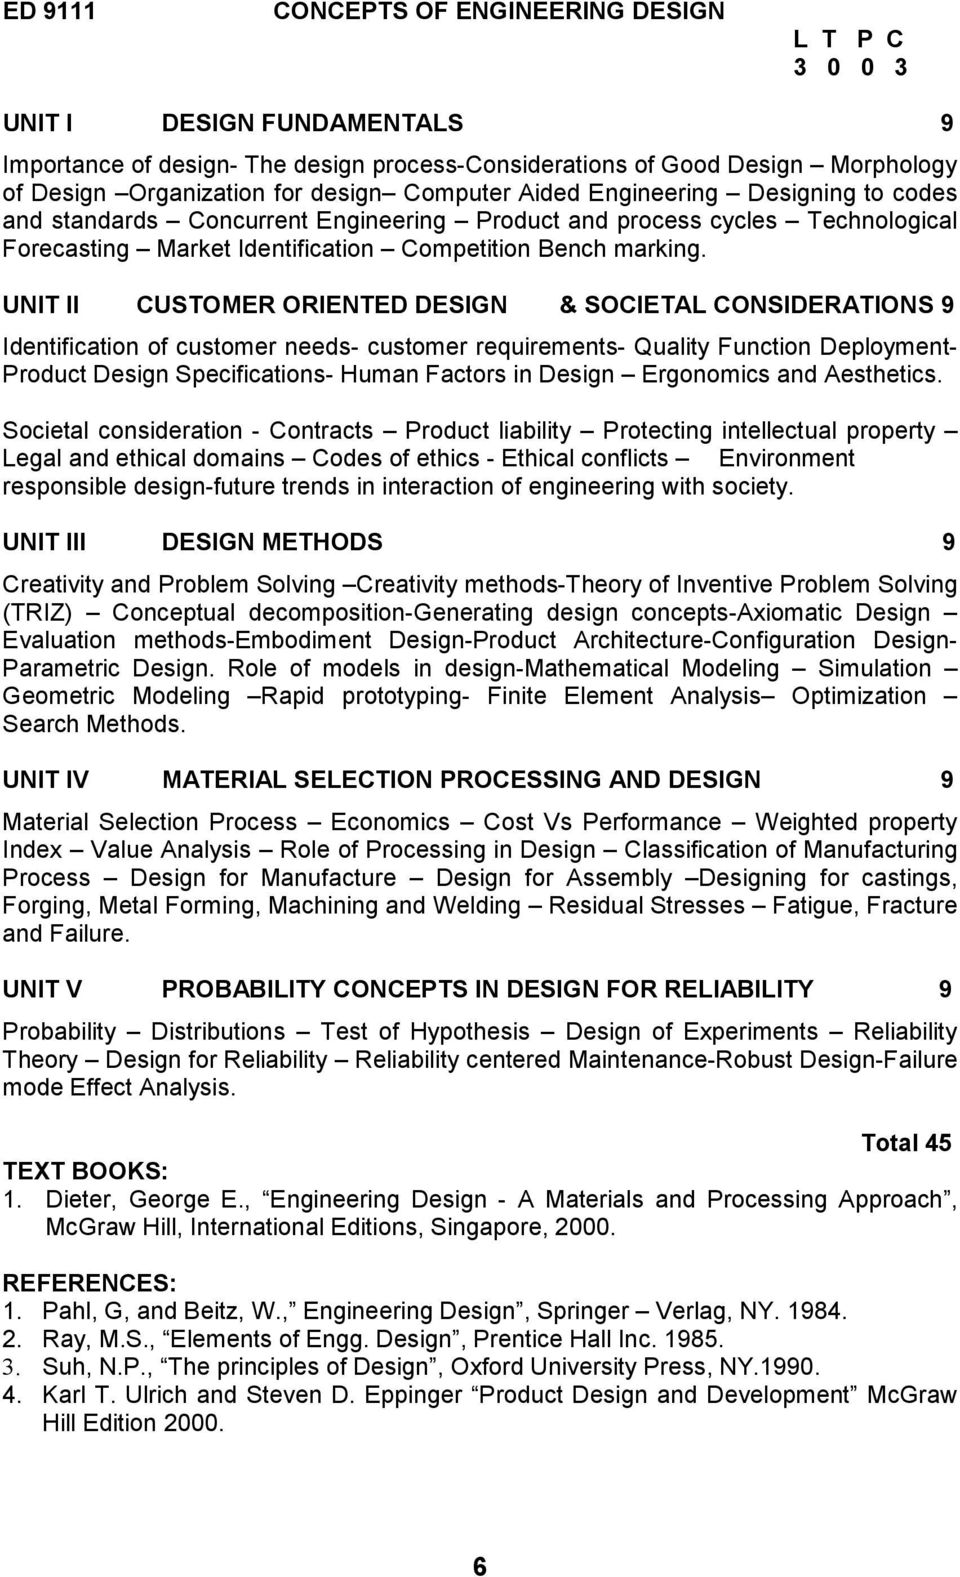 University Departments M E Product Design Development Pdf Free Download